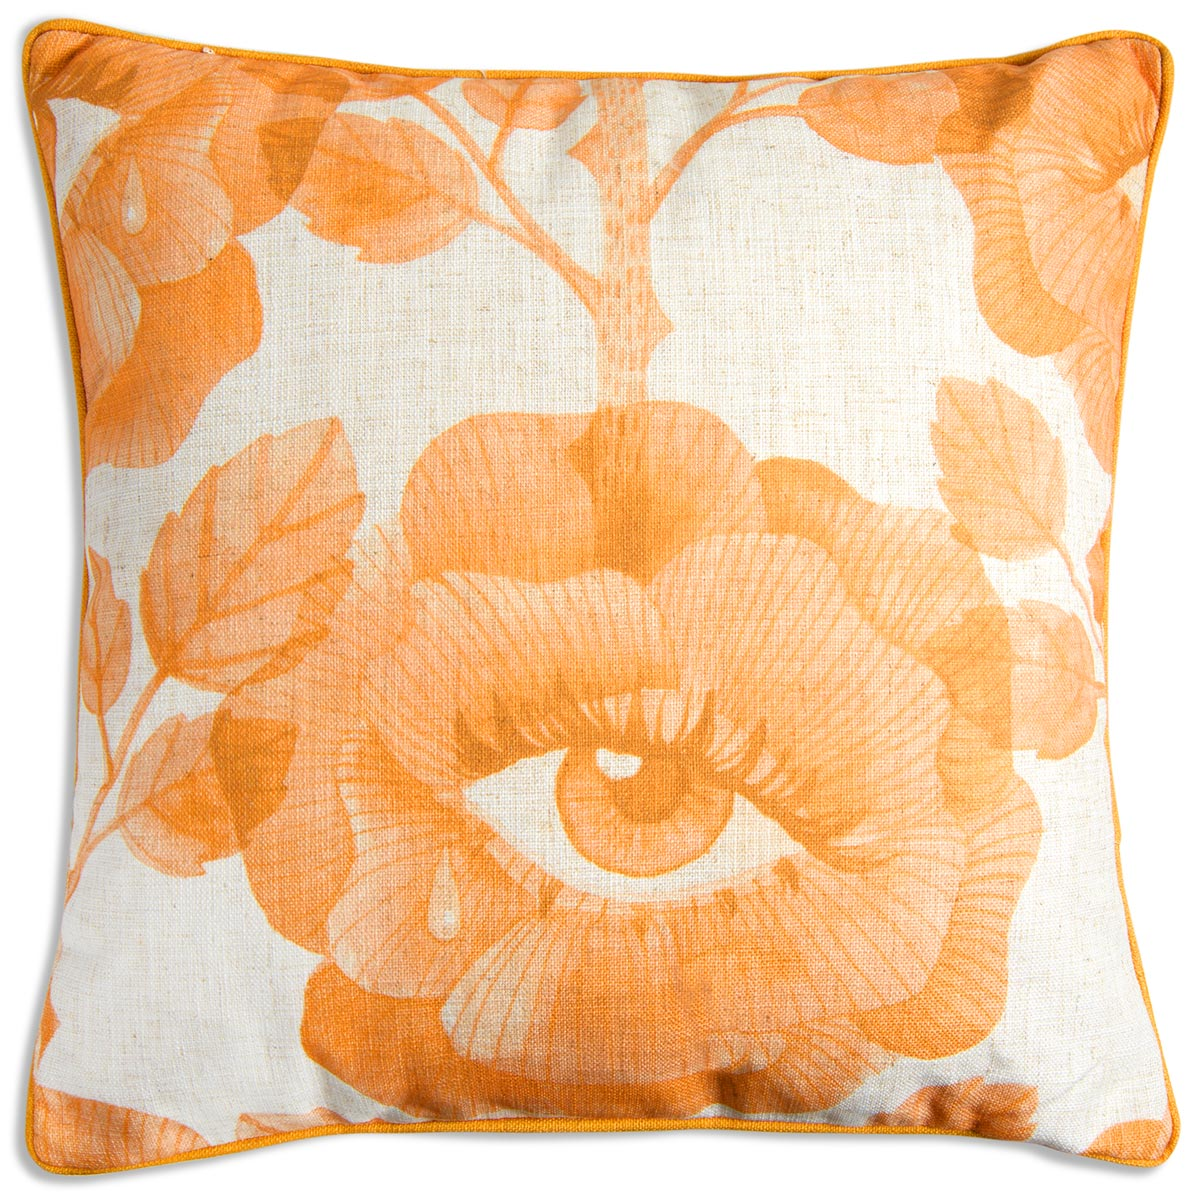 Floral Eyes Pillow in Mustard - ModShop1.com